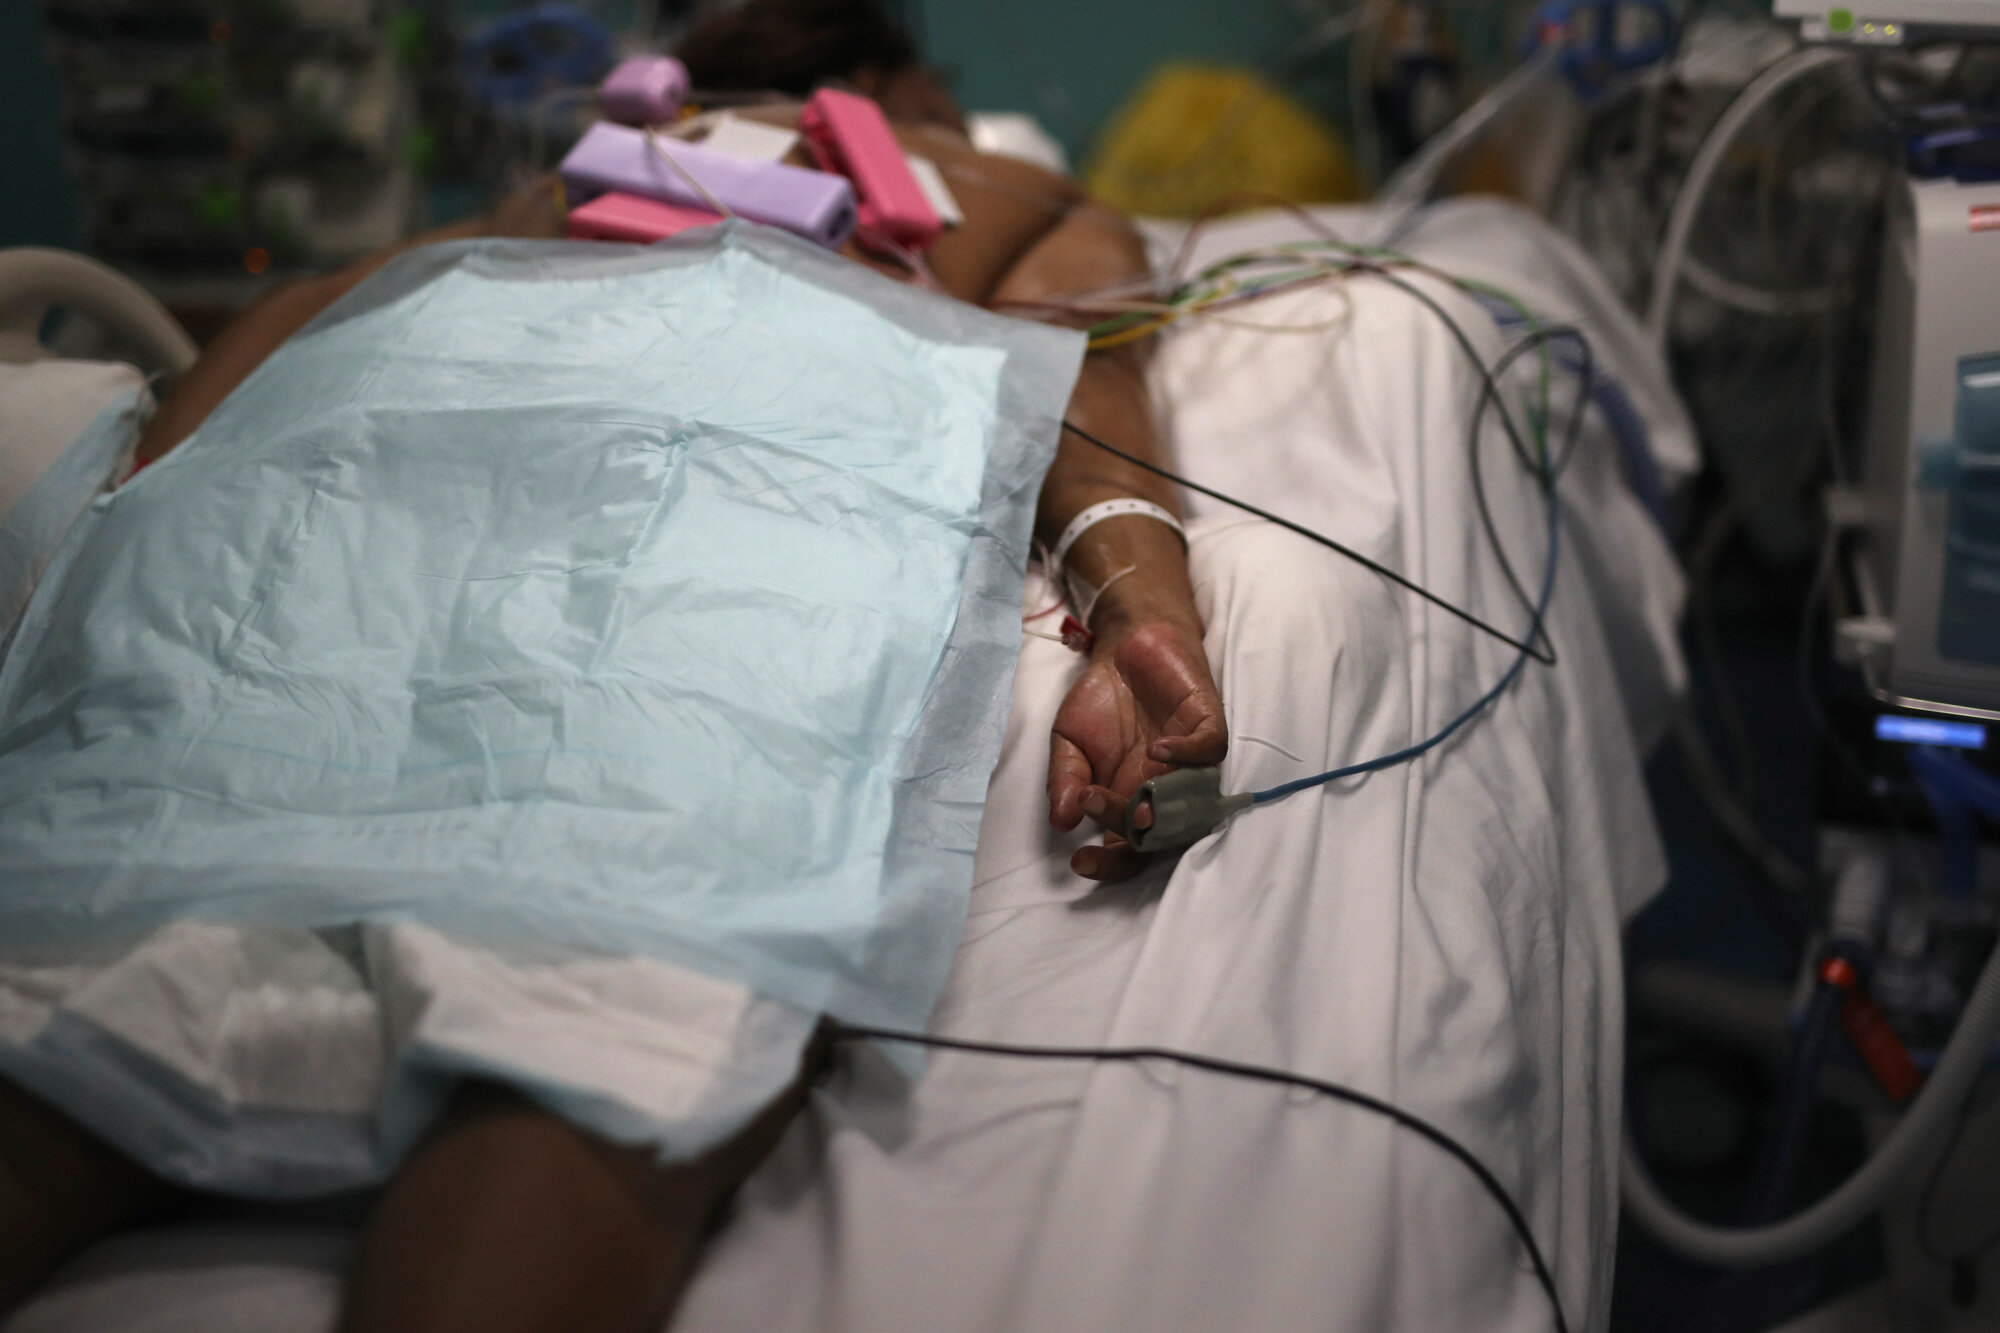 A patient afflicted with COVID-19 lies on a bed in a hospital in Marseille, France, on Sept.10, 2020. (AP Photo/Daniel Cole)